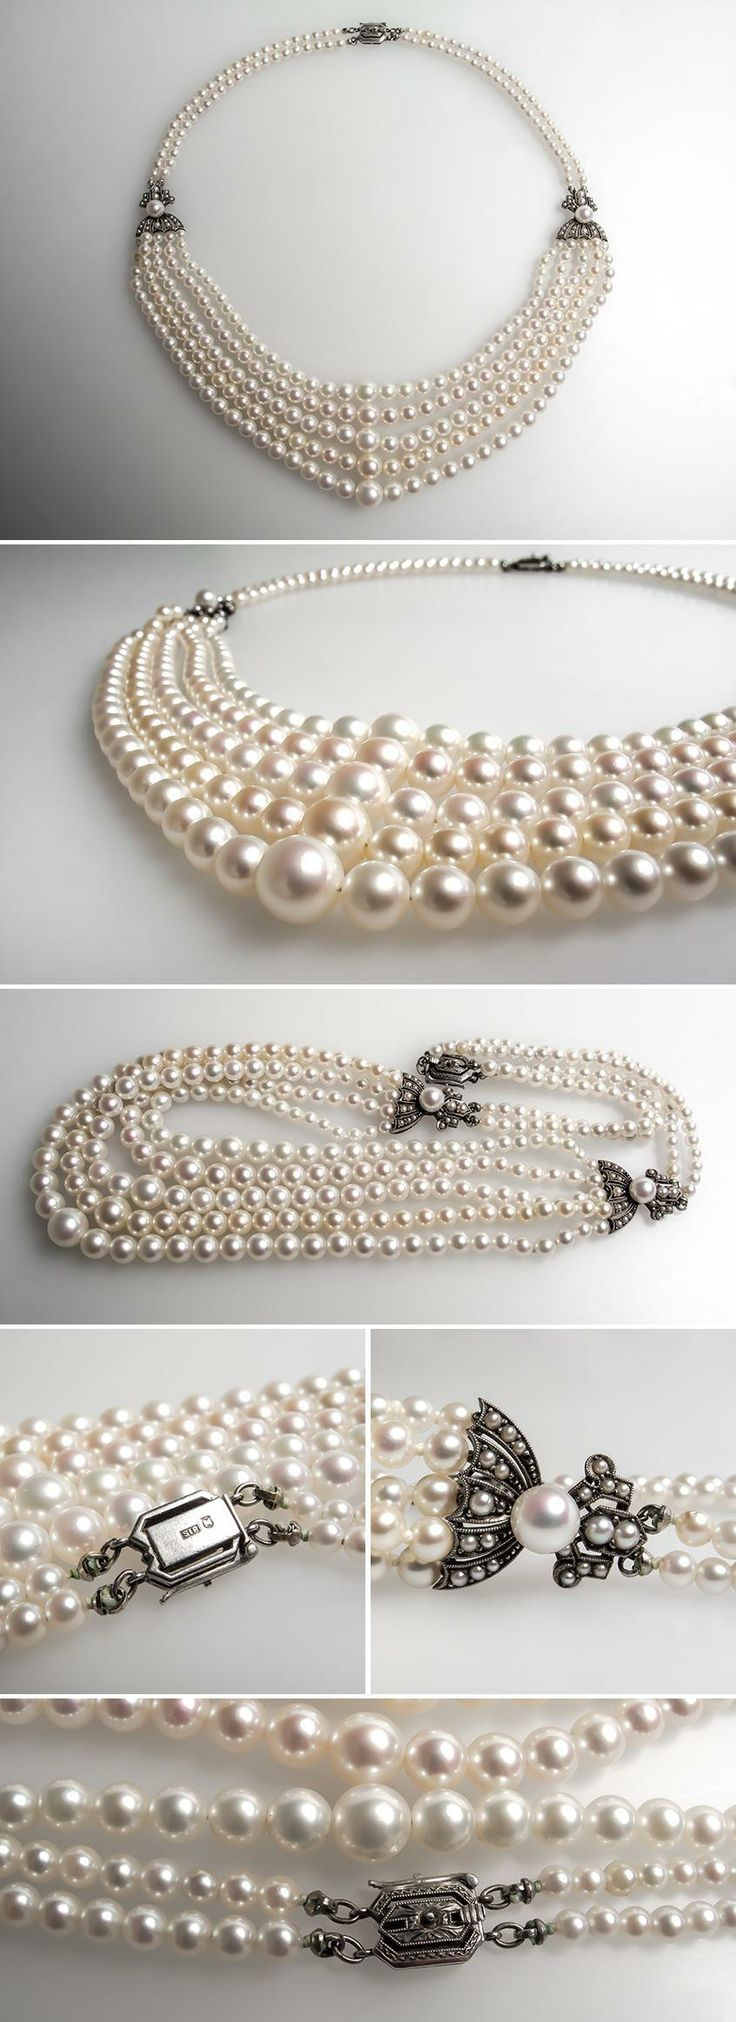 nyr mikimoto and cultured pearls necklace jewels christie online diamond christies gray s pearl